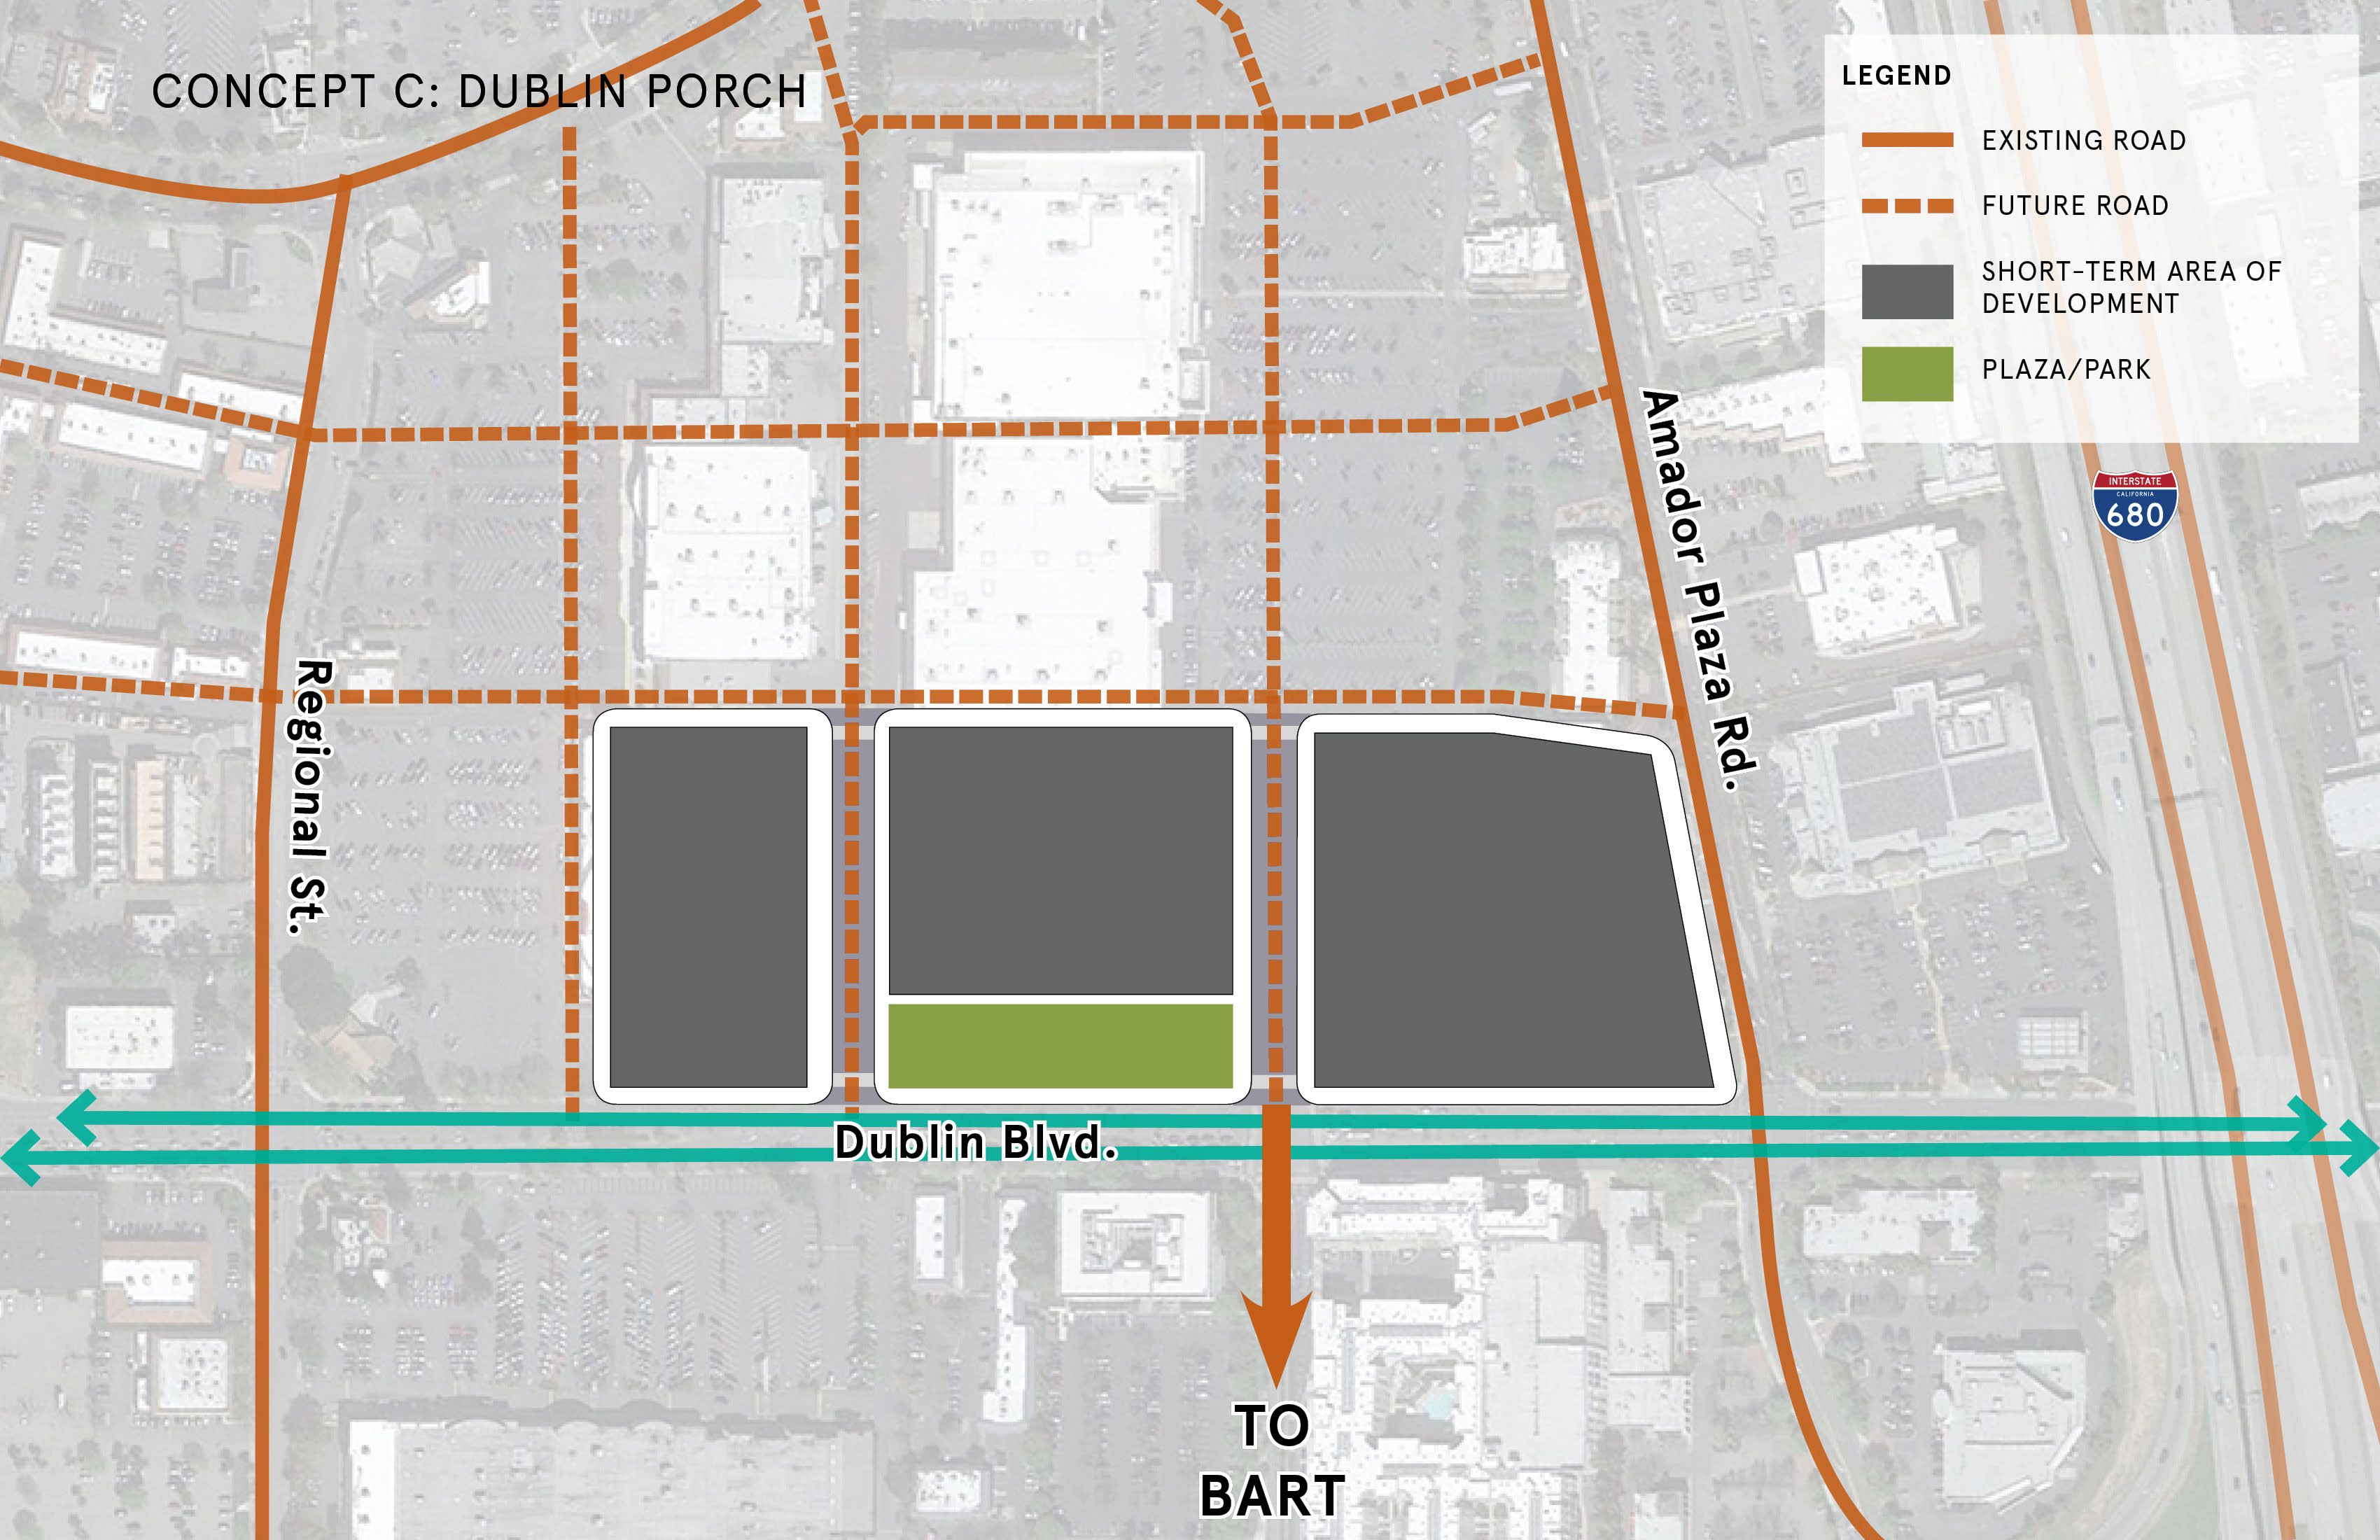 Concept C: Dublin Porch - This concept would place the Town Square adjacent to Dublin Blvd. running parallel with the street. The Town Square would be highly visible and linear, but may require change